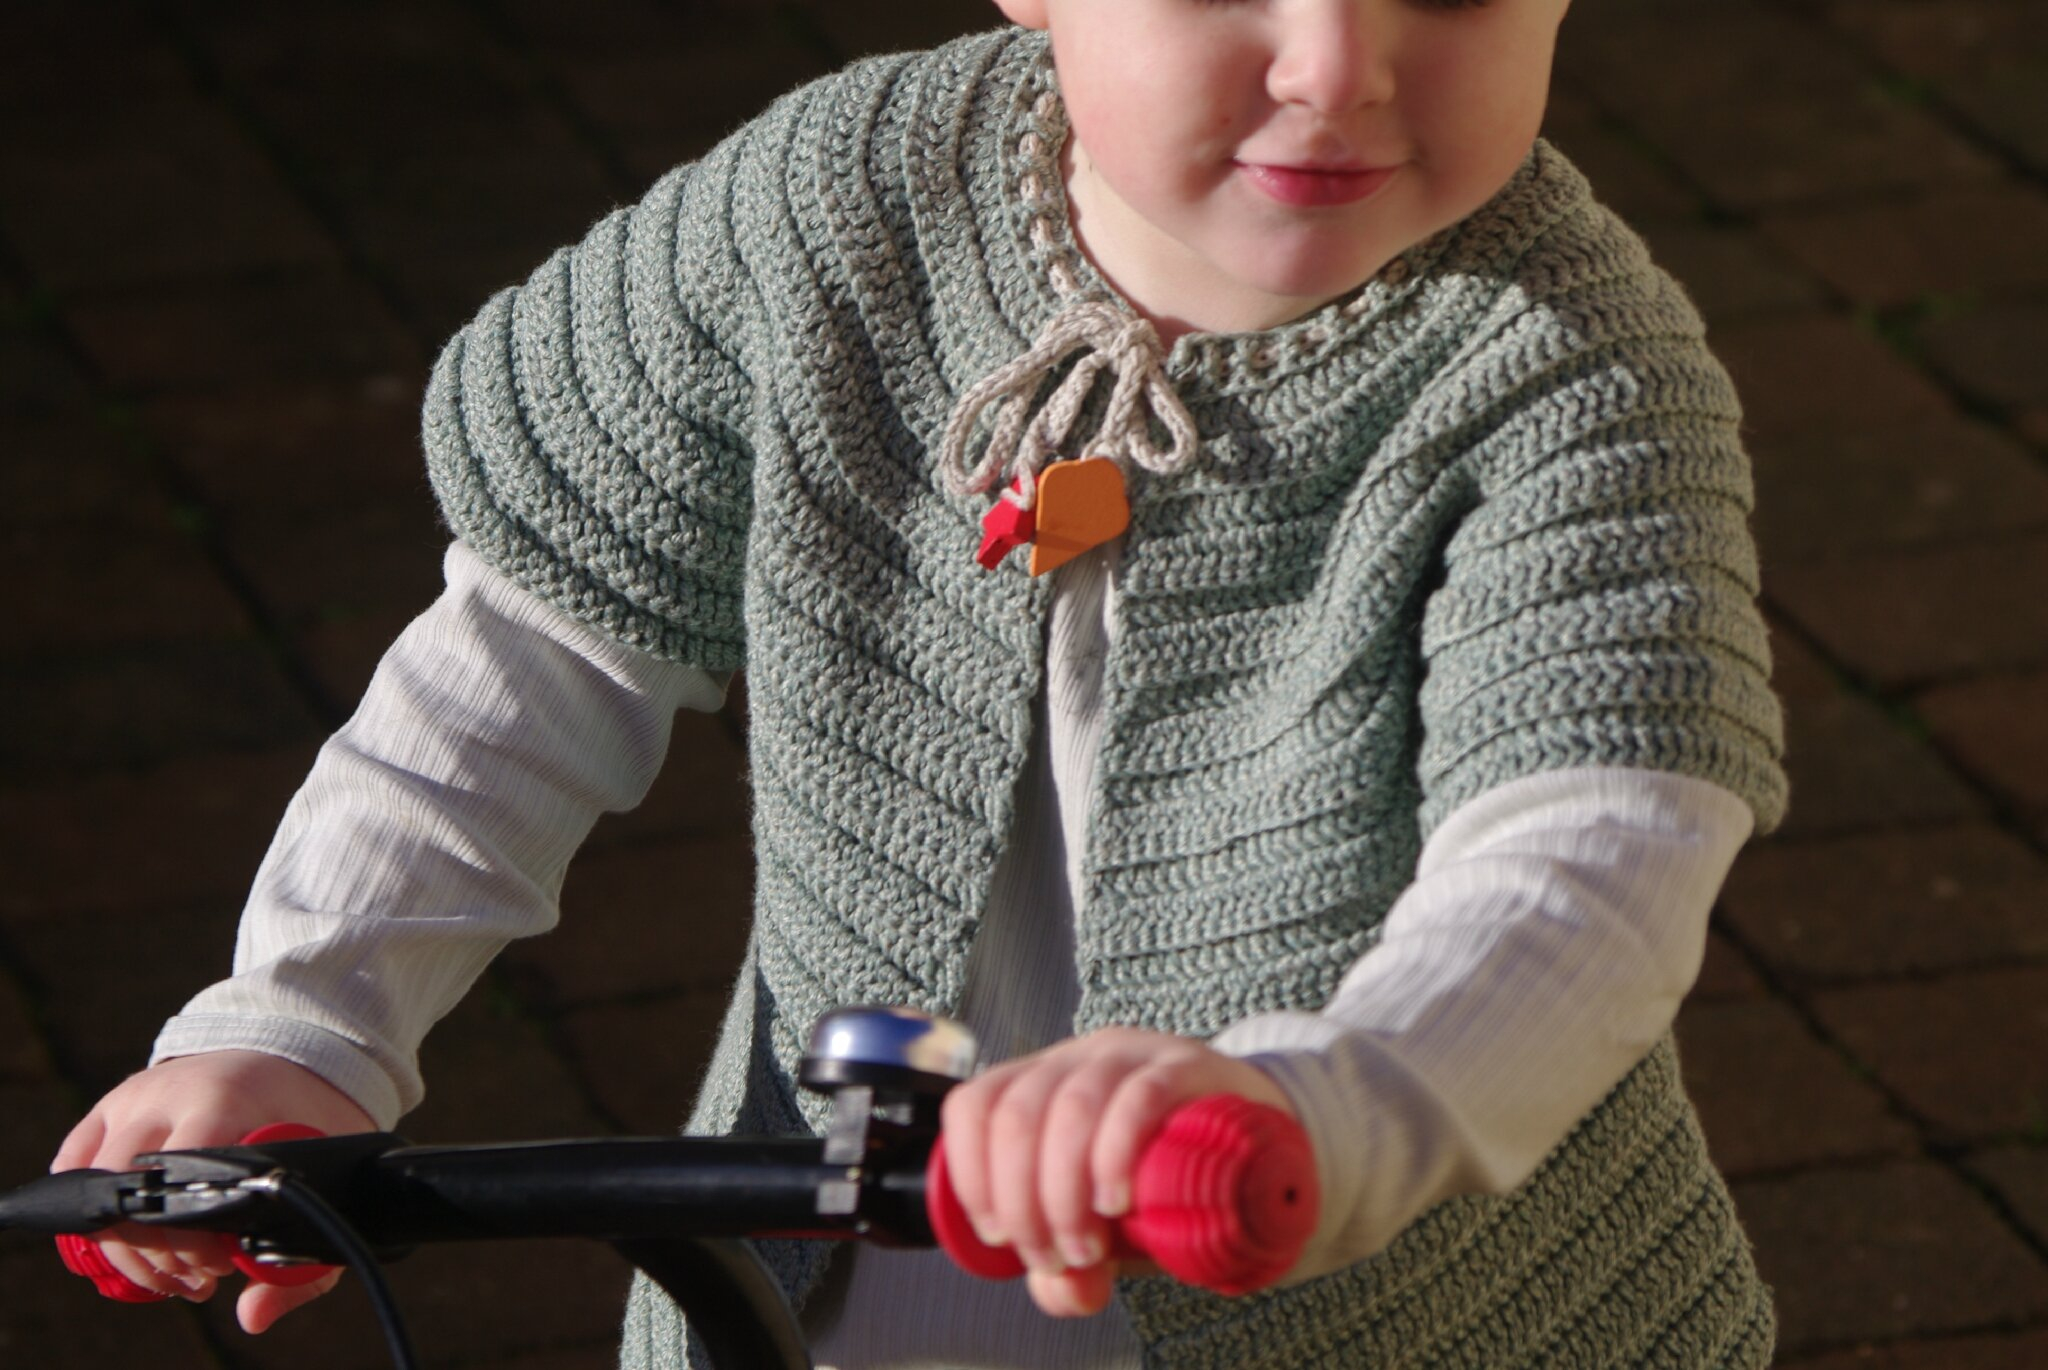 crocheter un gilet rond top-down